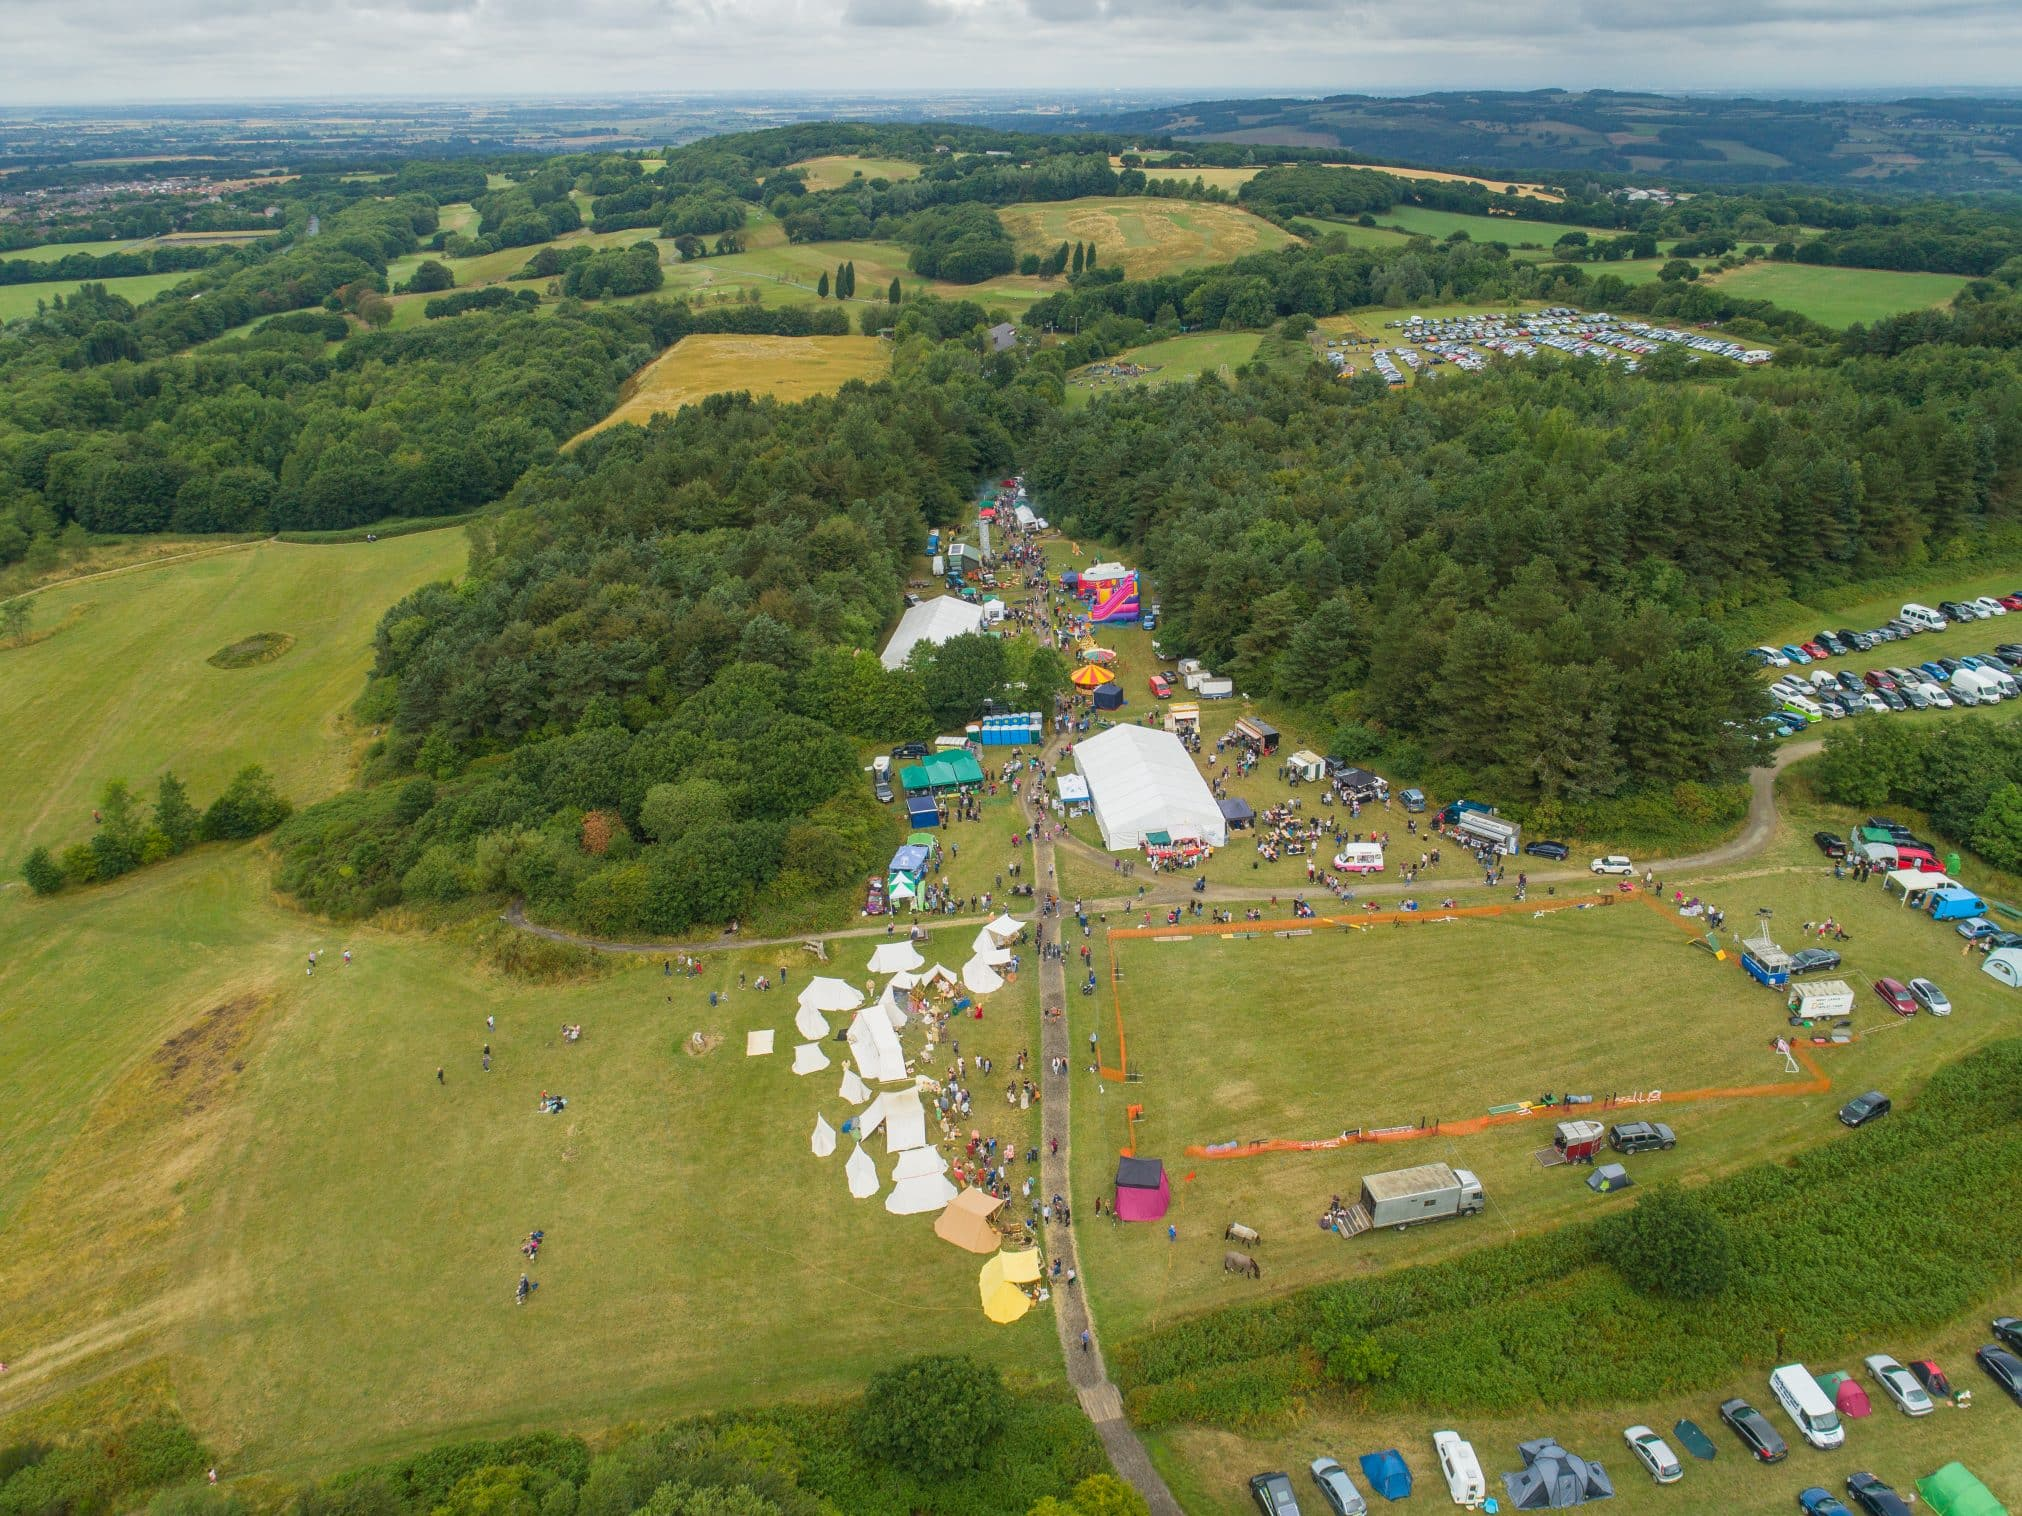 Drone photograph of Green Fayre at Beacon Country Park